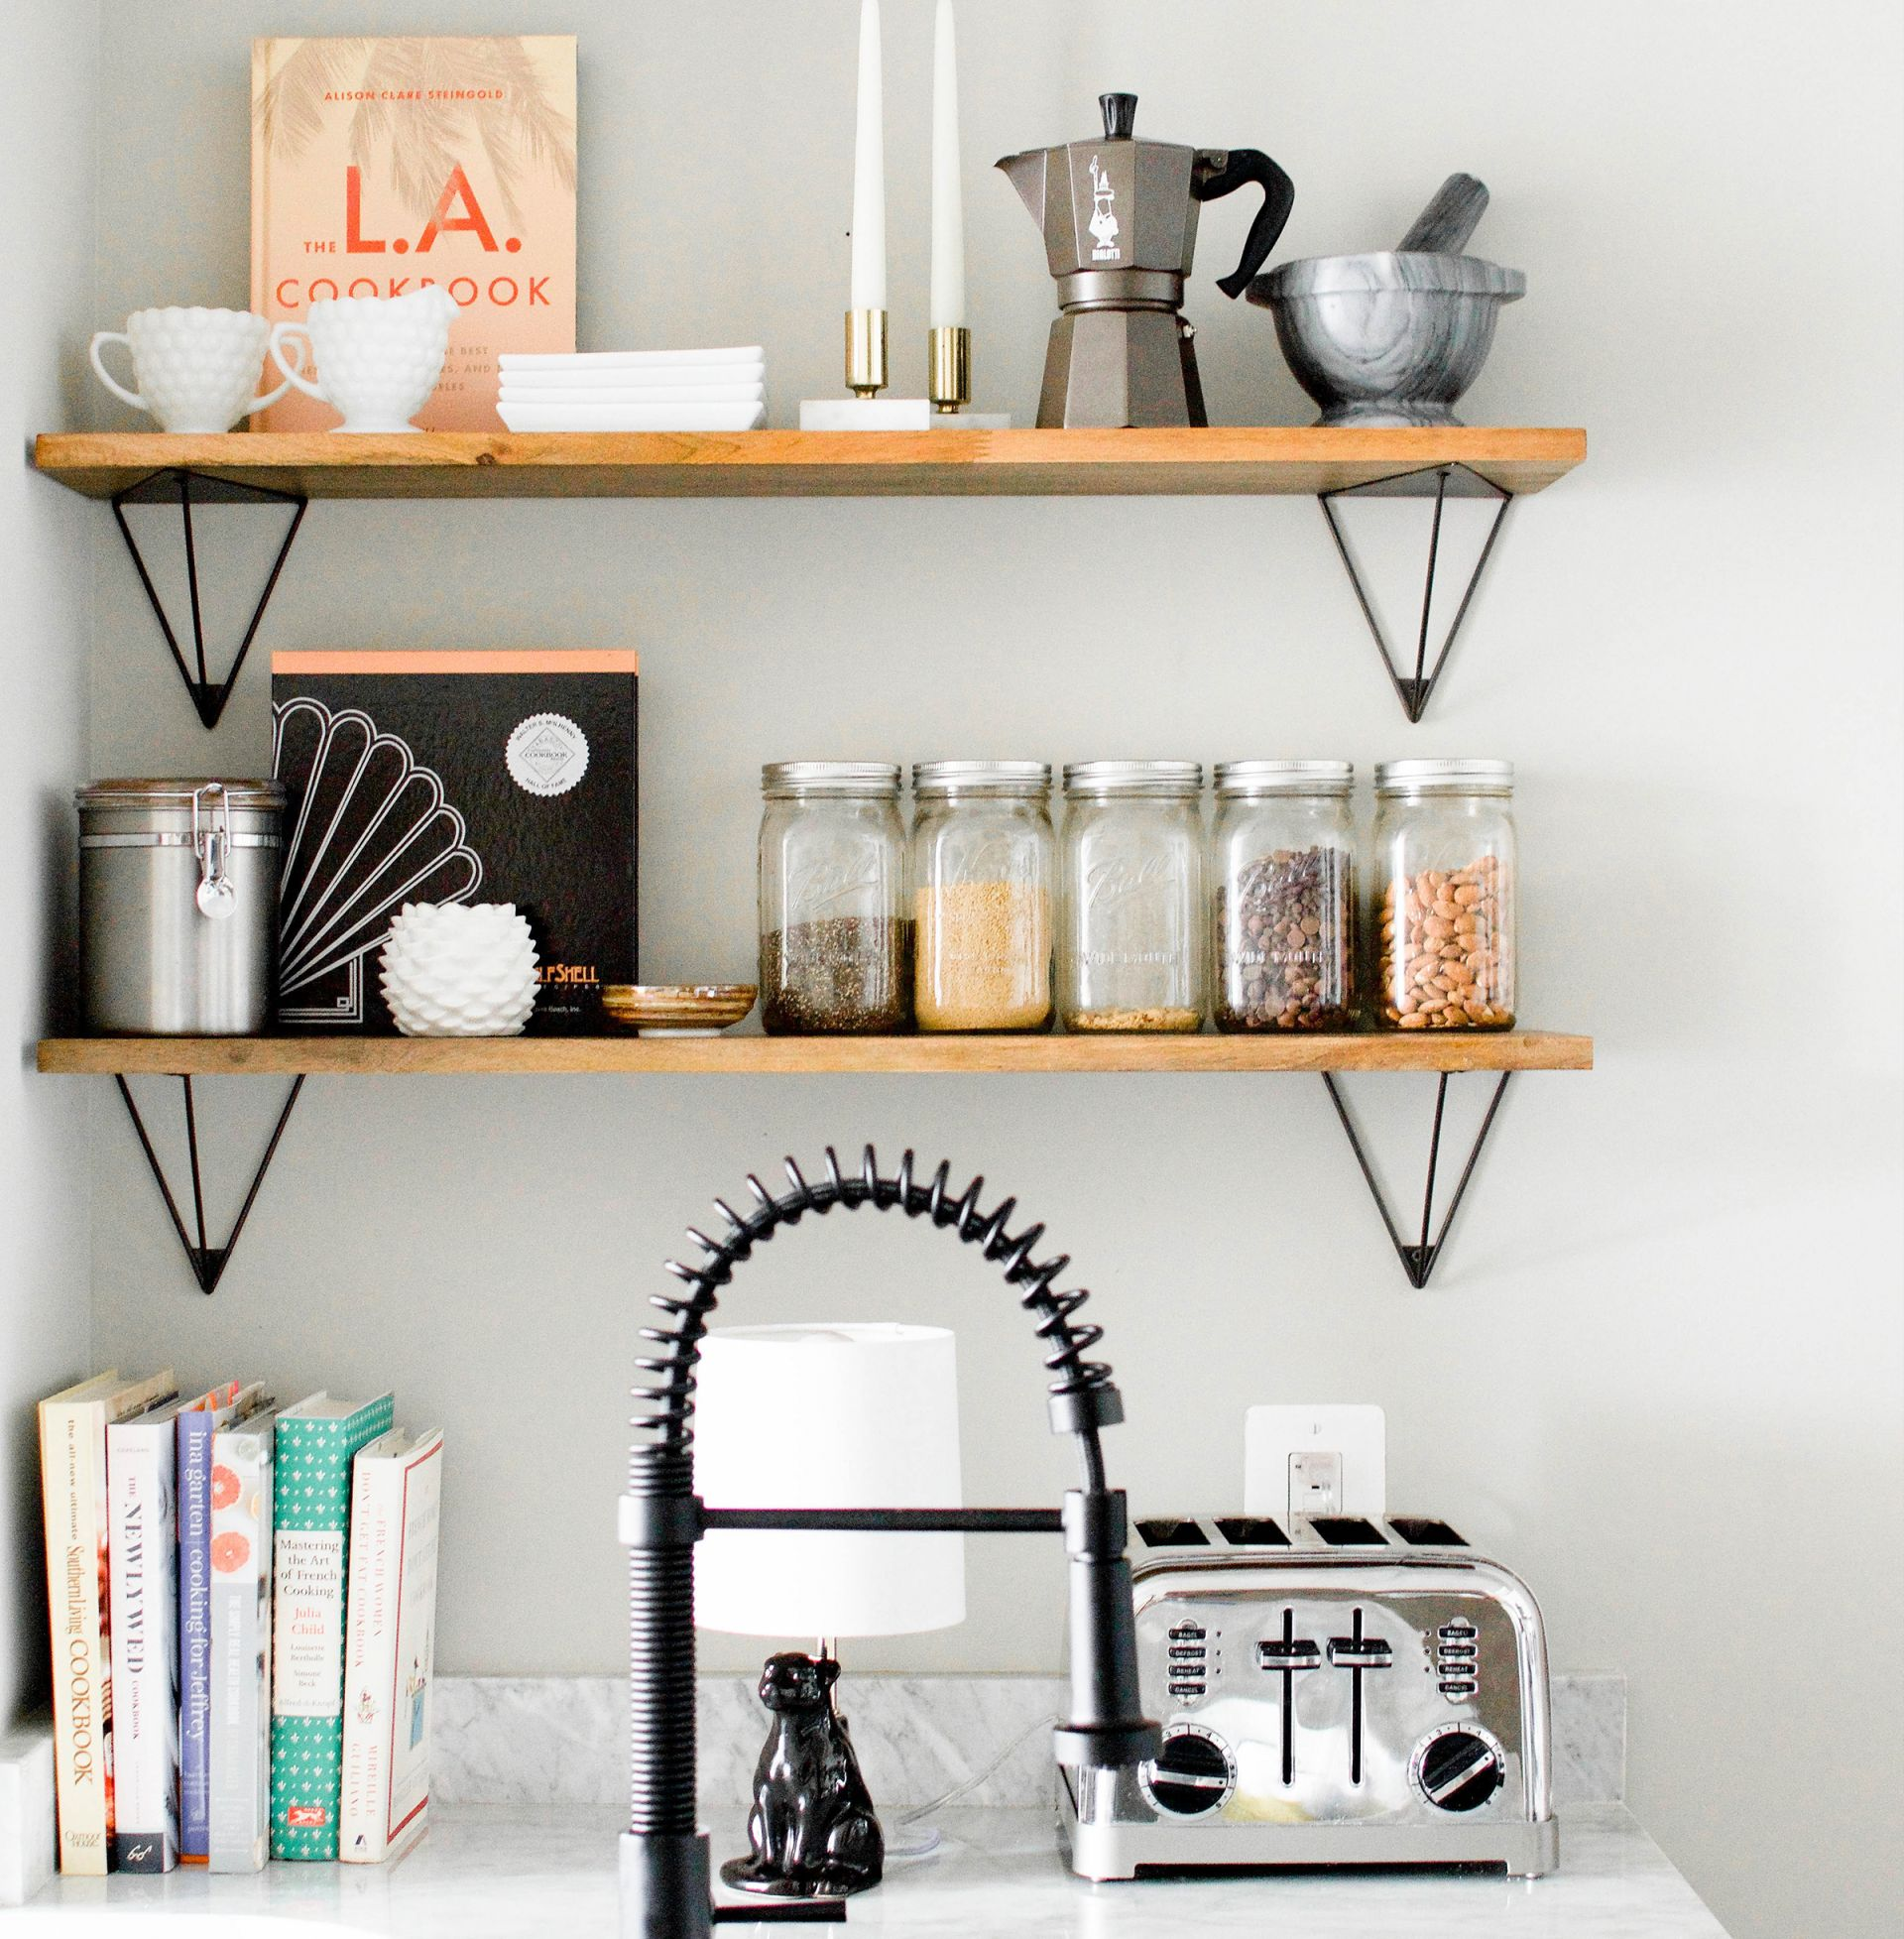 Create More Kitchen Storage Install Open Shelving Above The Sink Heather Bien